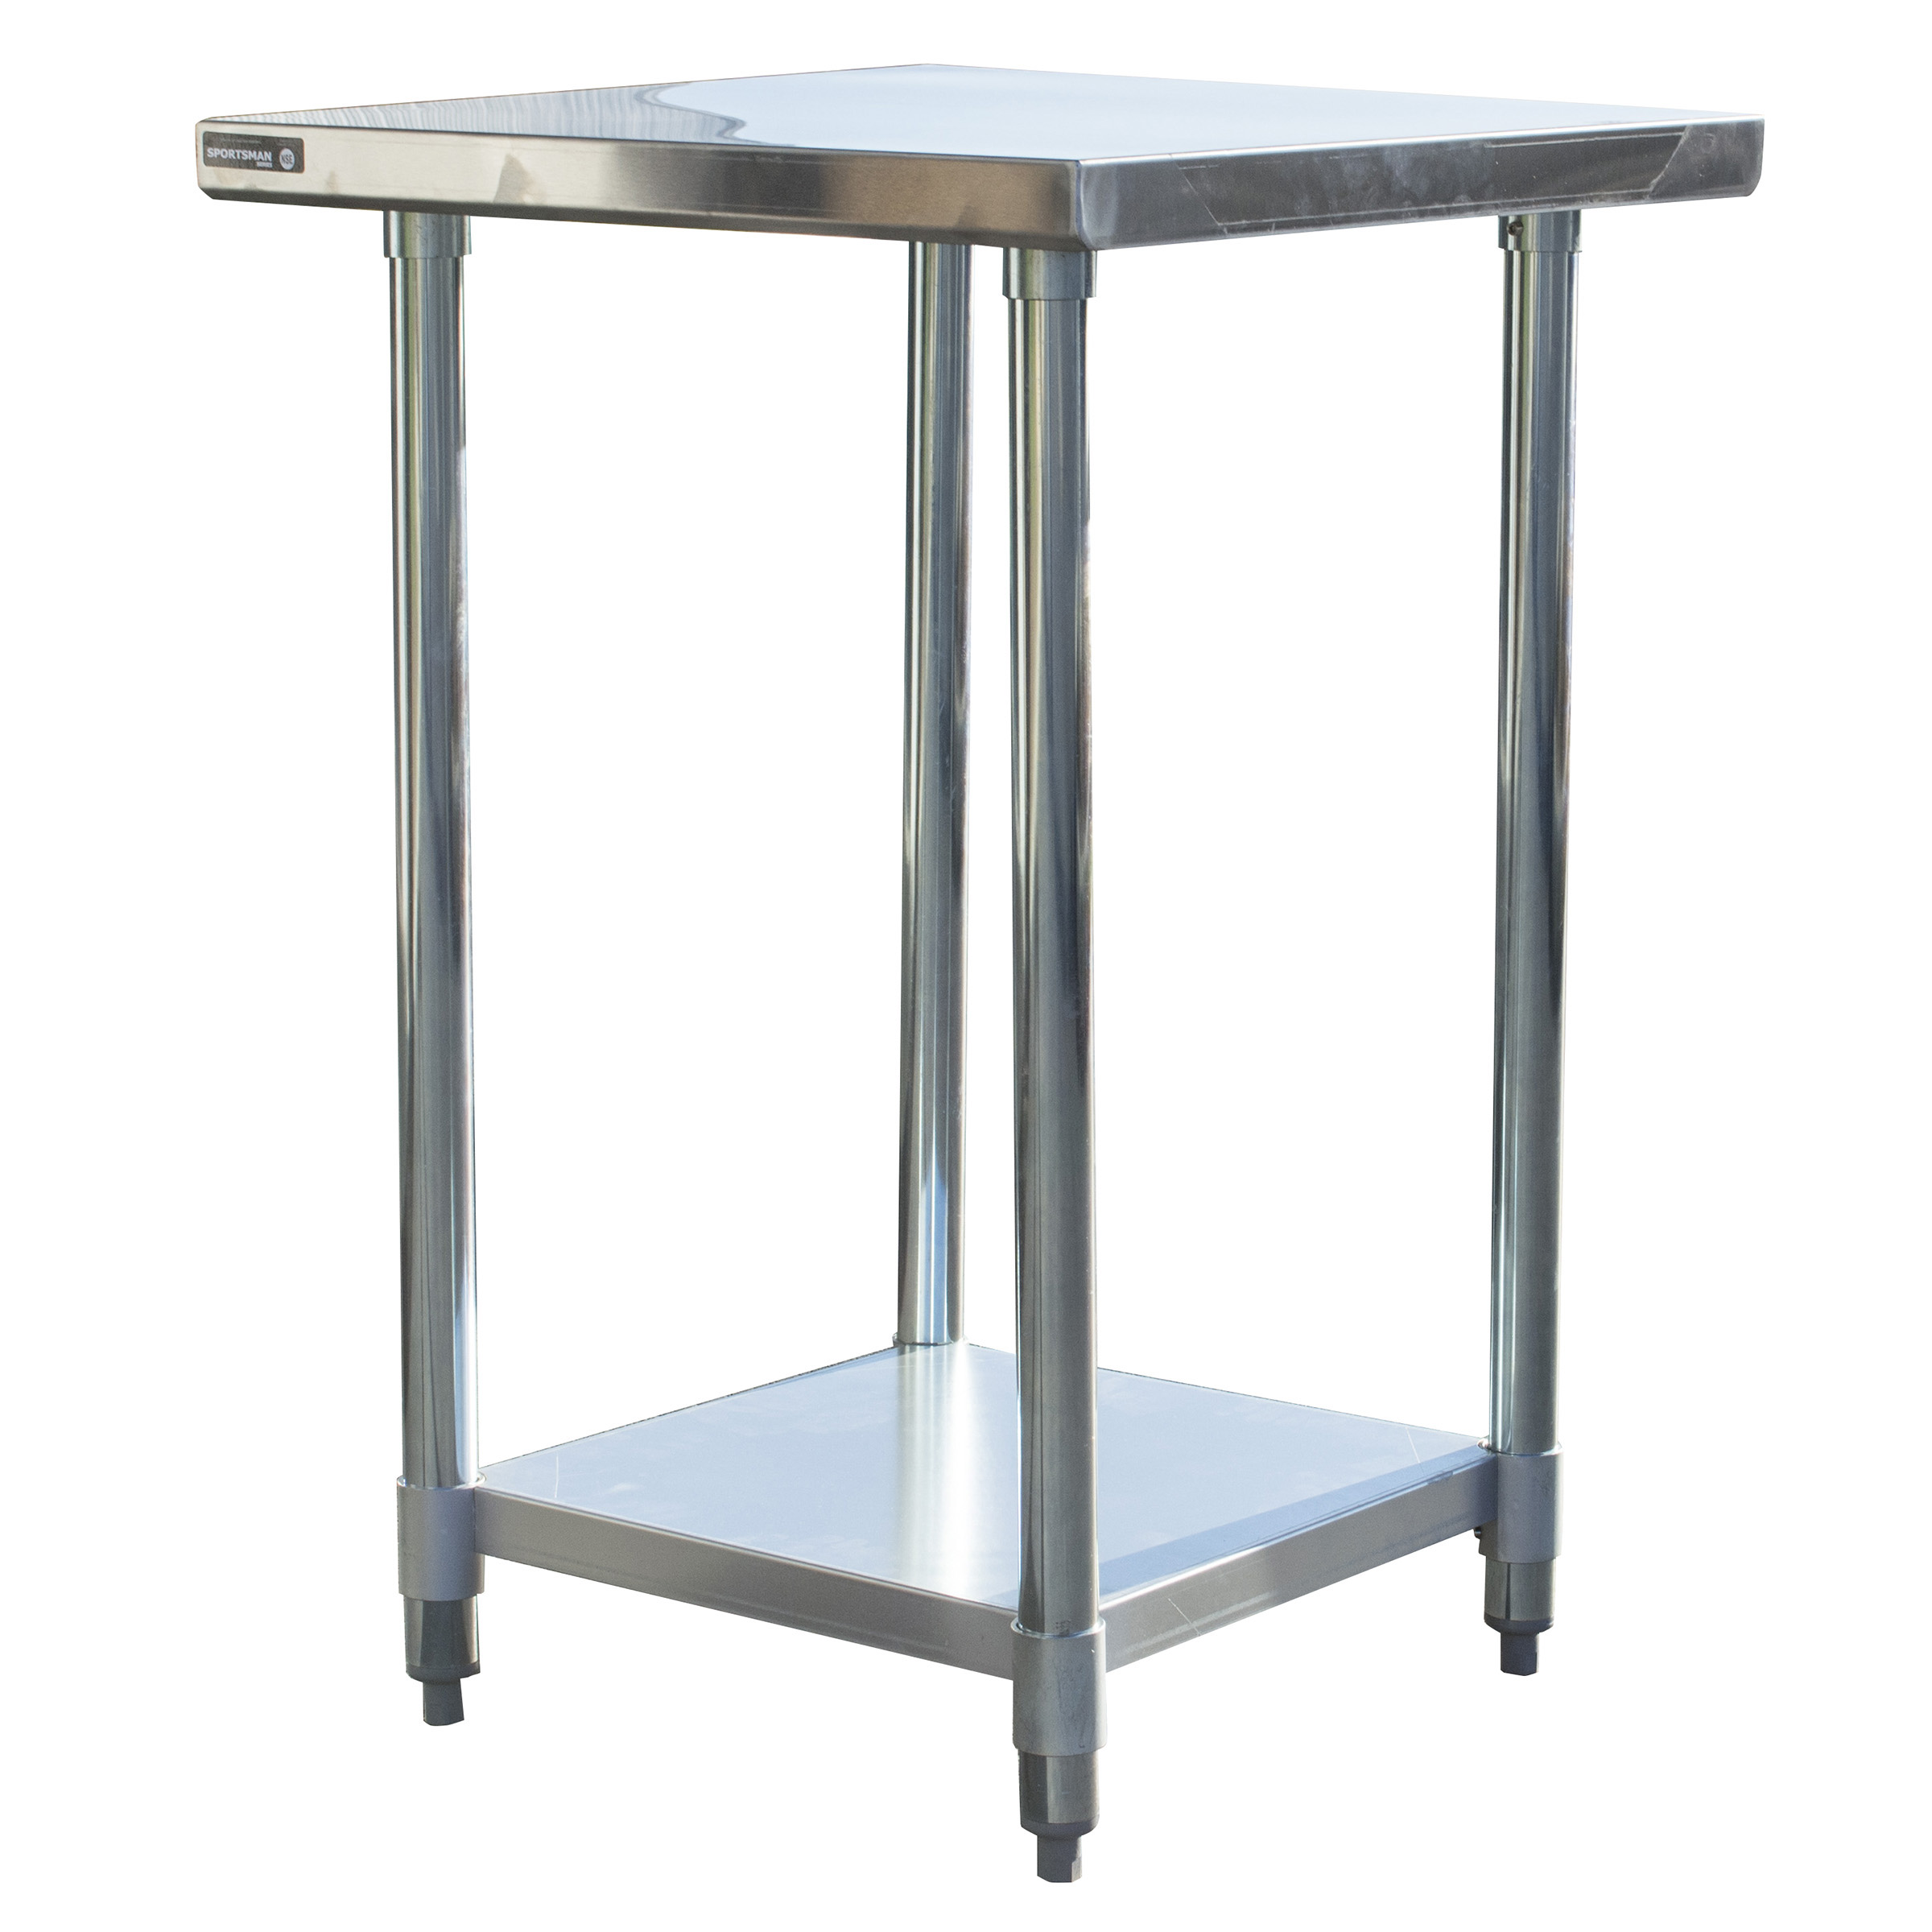 Sportsman Series Stainless Steel Work Table 24 x 24 Inches